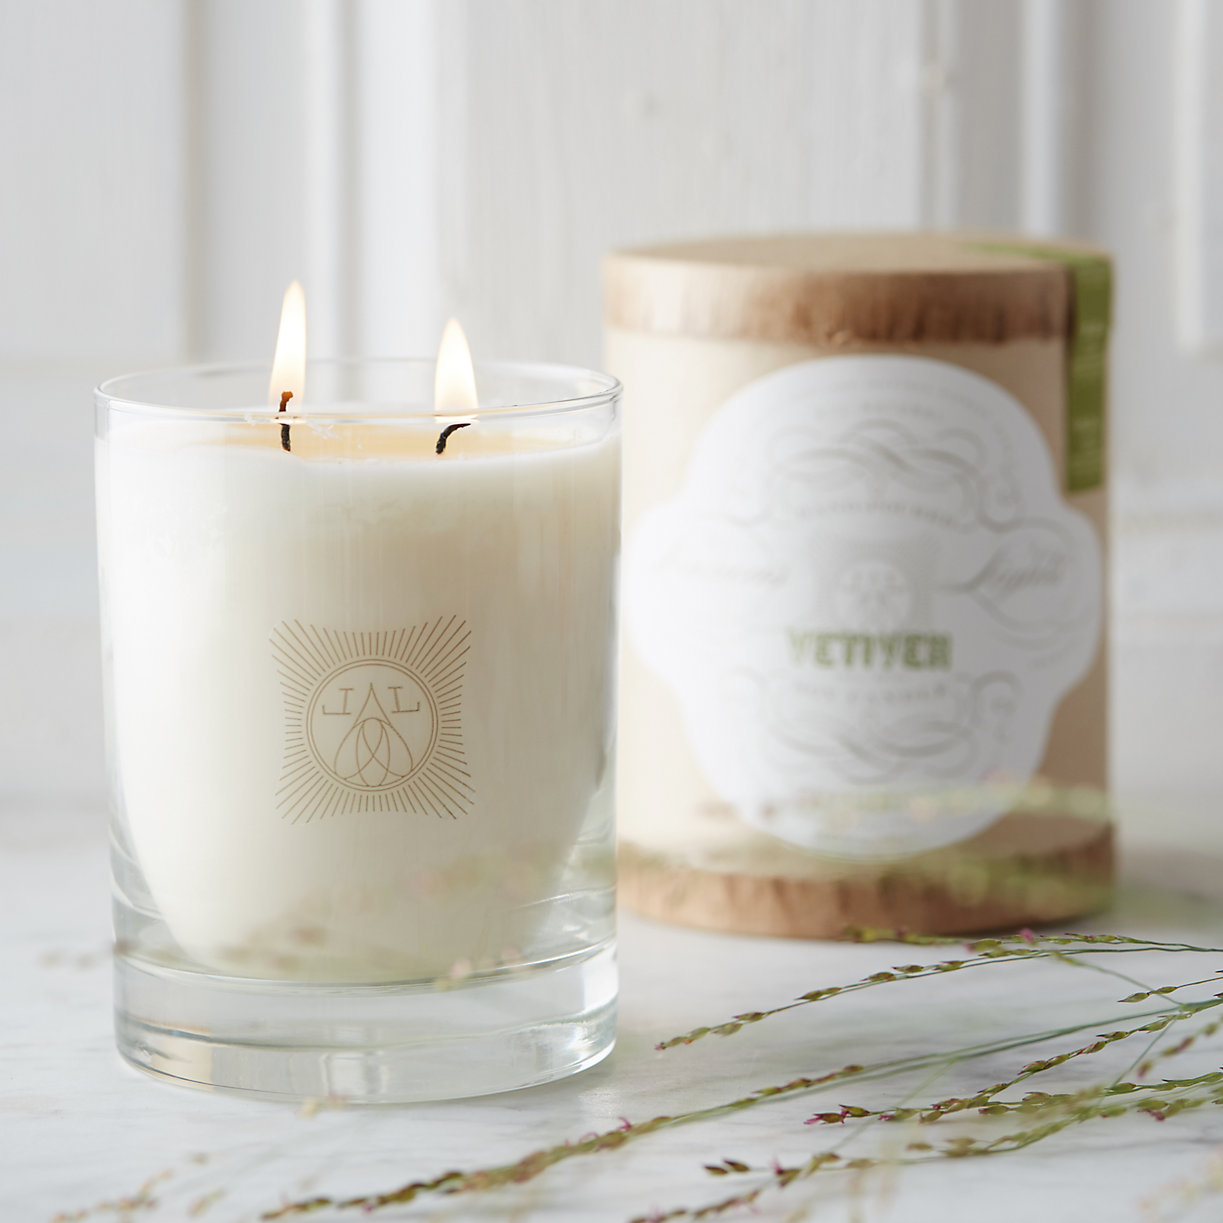 Linnea's Lights candle, Vetiver scent,$34